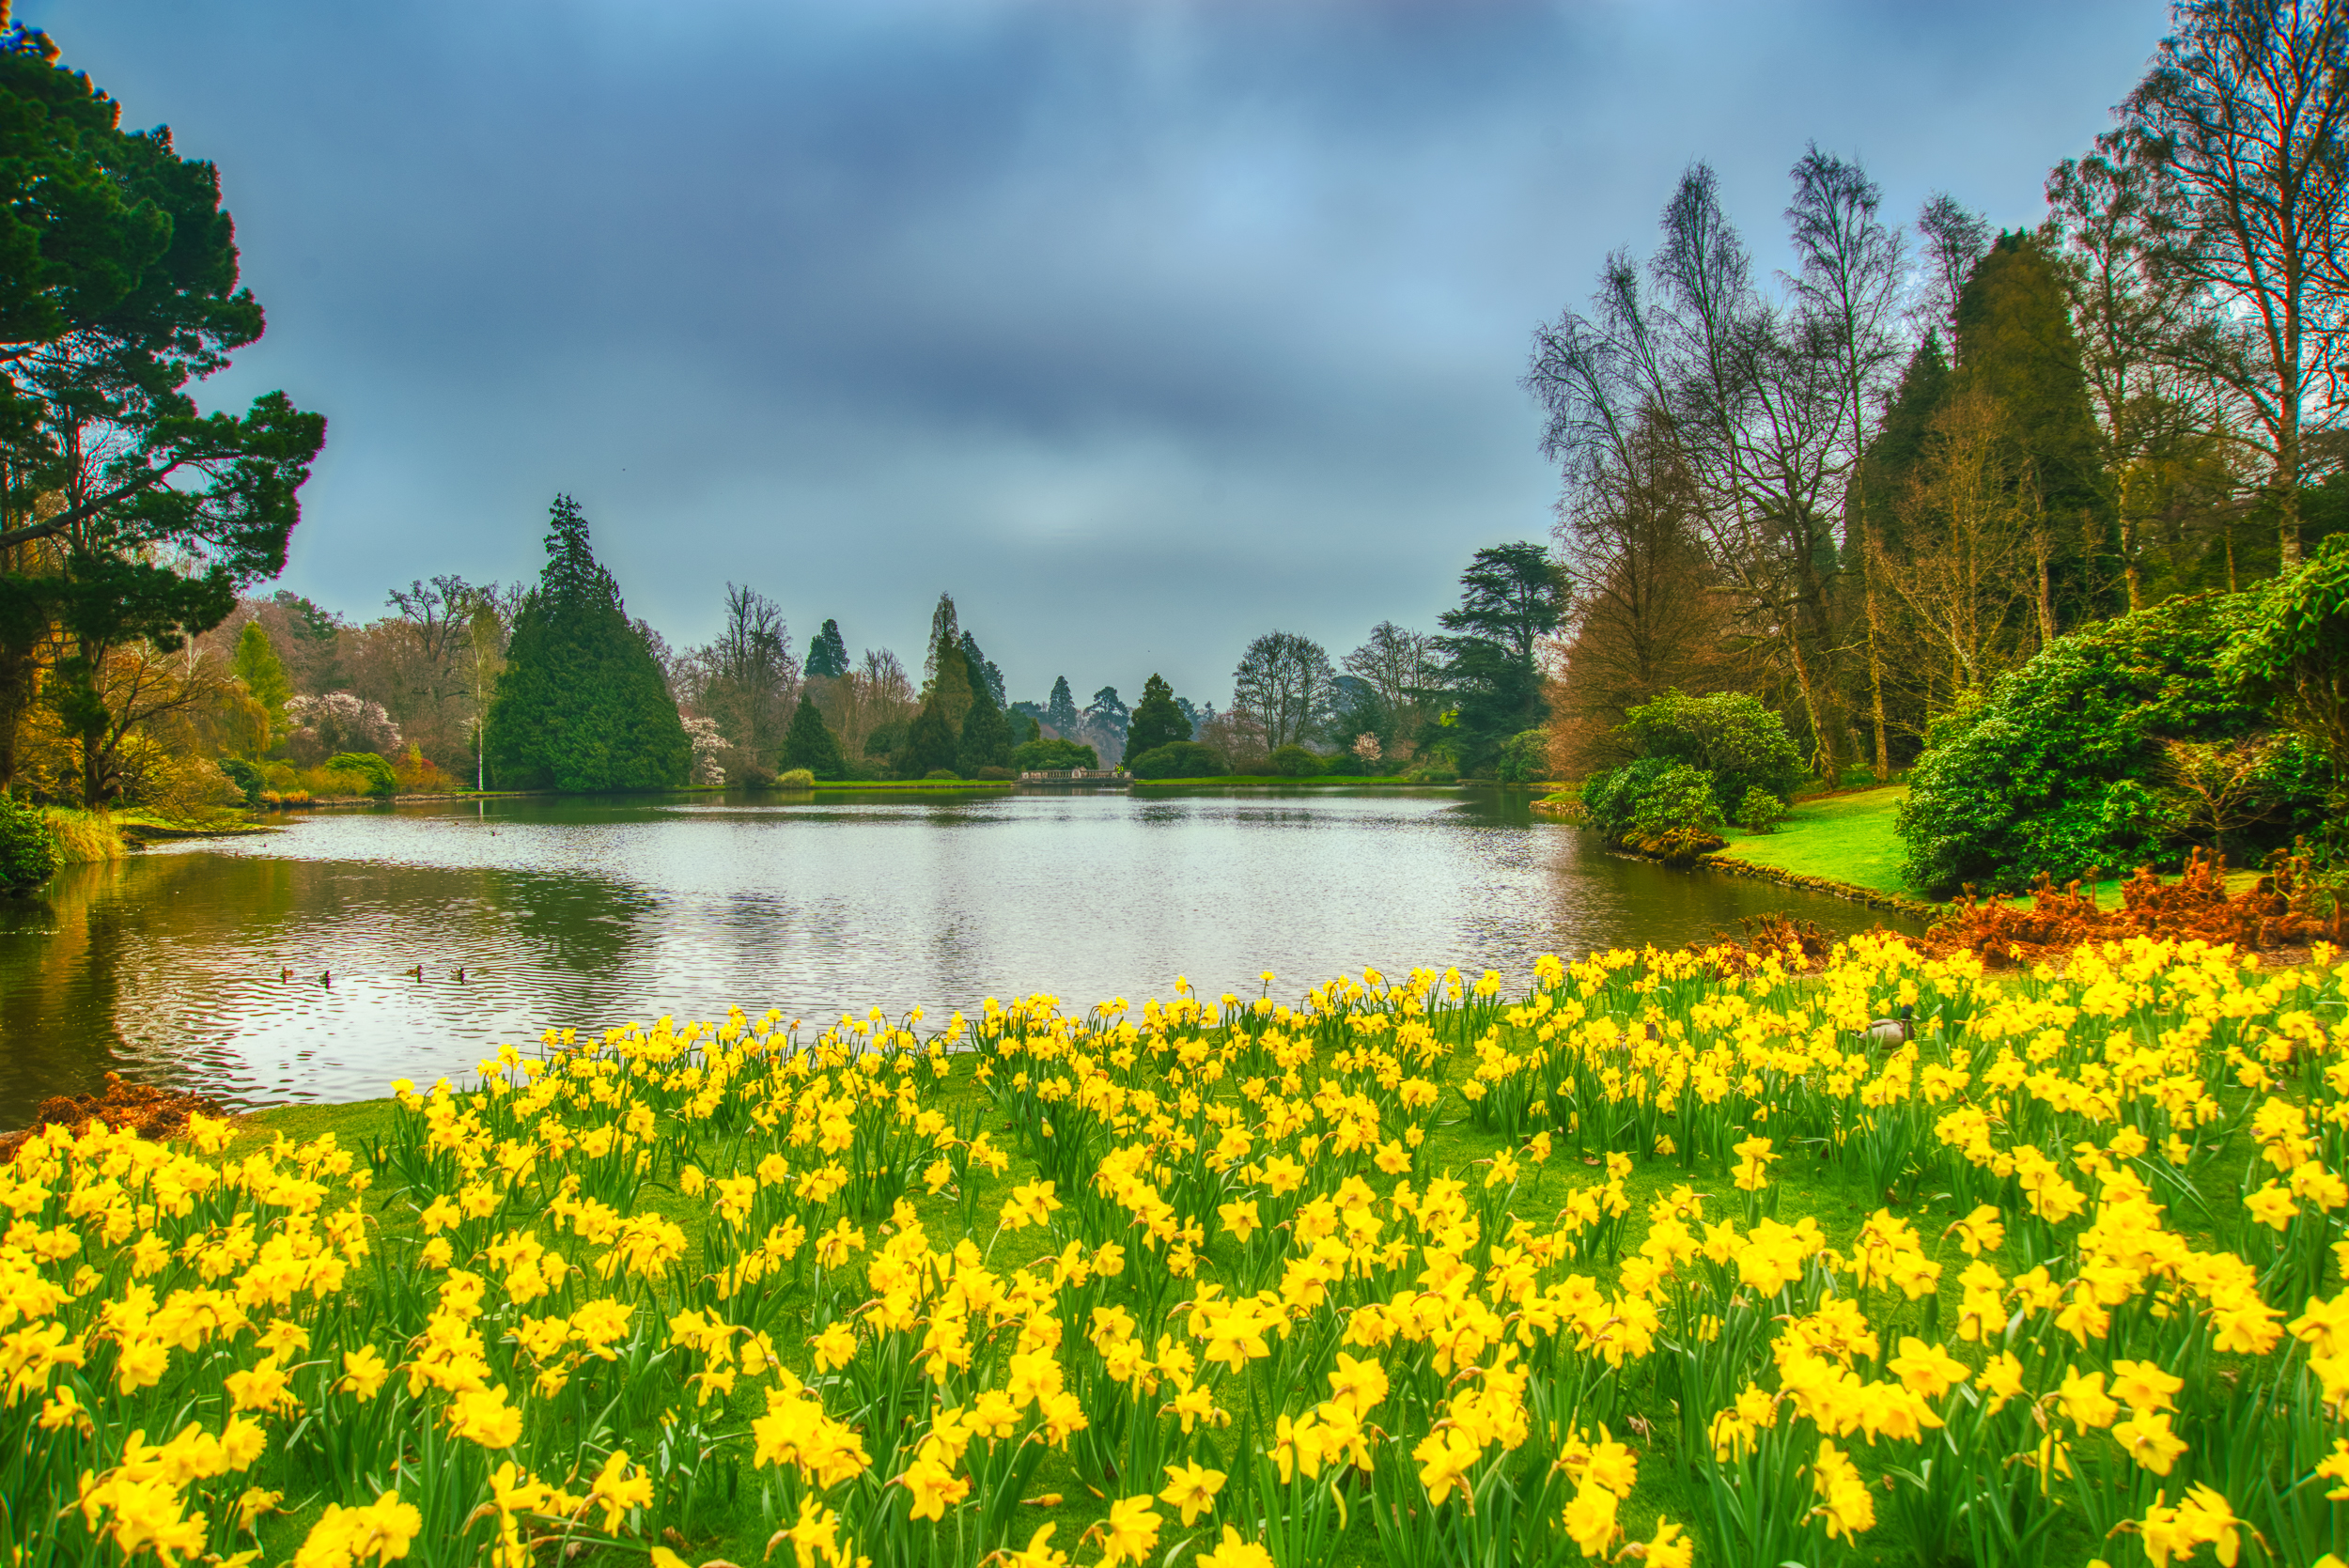 All the Colours of Spring    📷 PHOTO INFORMATION    DATE TAKEN  2019-04-07 10:30:29   CAMERA  D610   CAMERA MAKE  NIKON   EXPOSURE TIME  1/200   APERTURE  F/8   ISO  100   FOCAL LENGTH  24MM